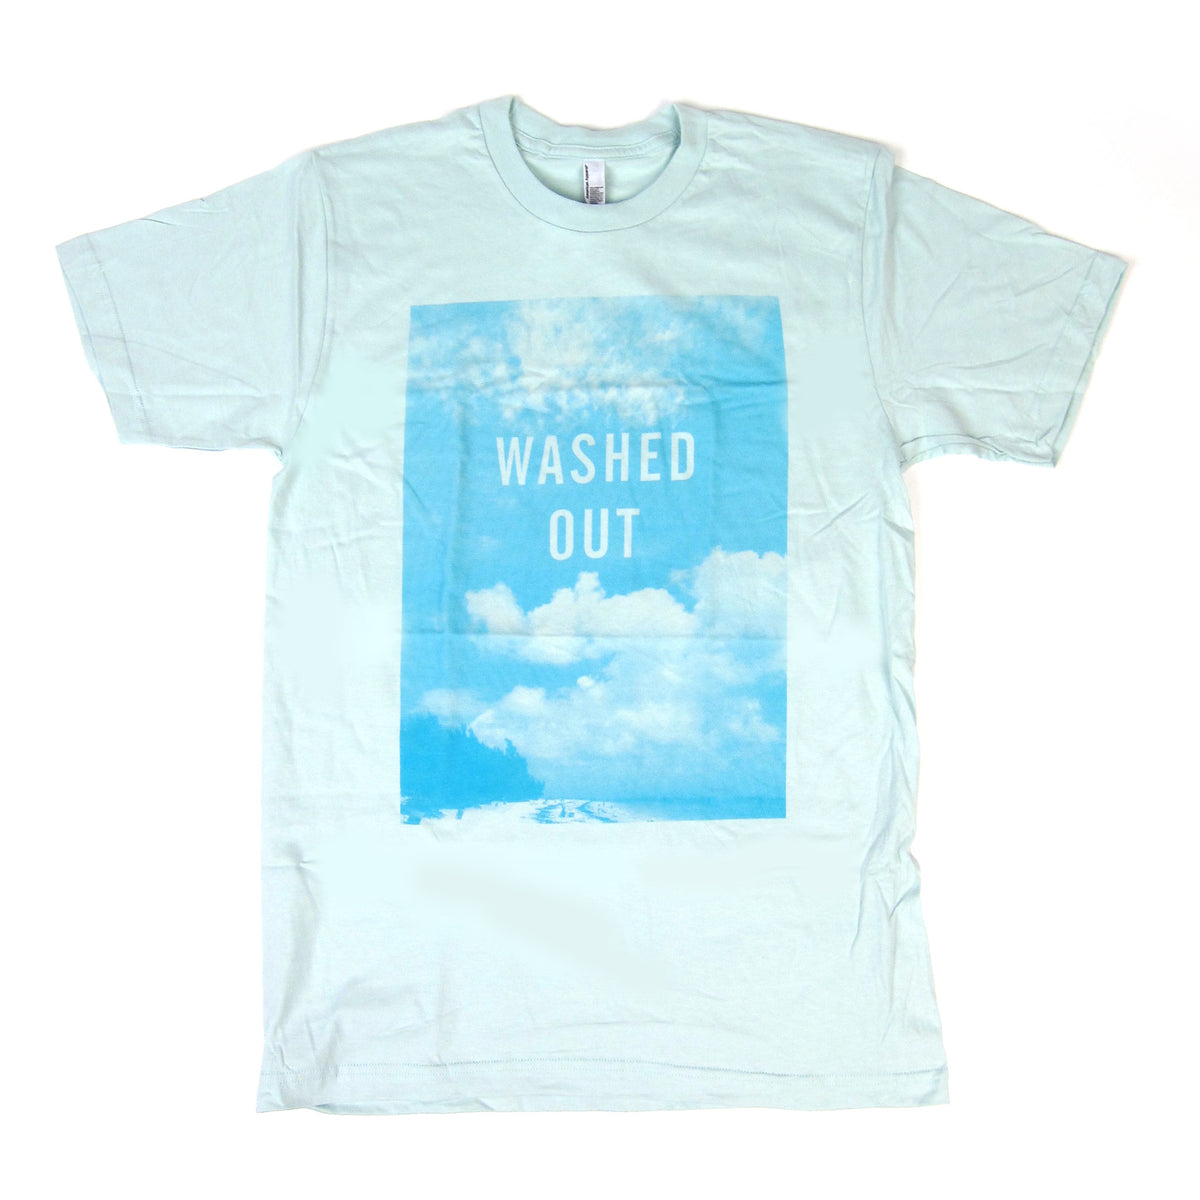 Washed Out: Clouds Shirt - Mint